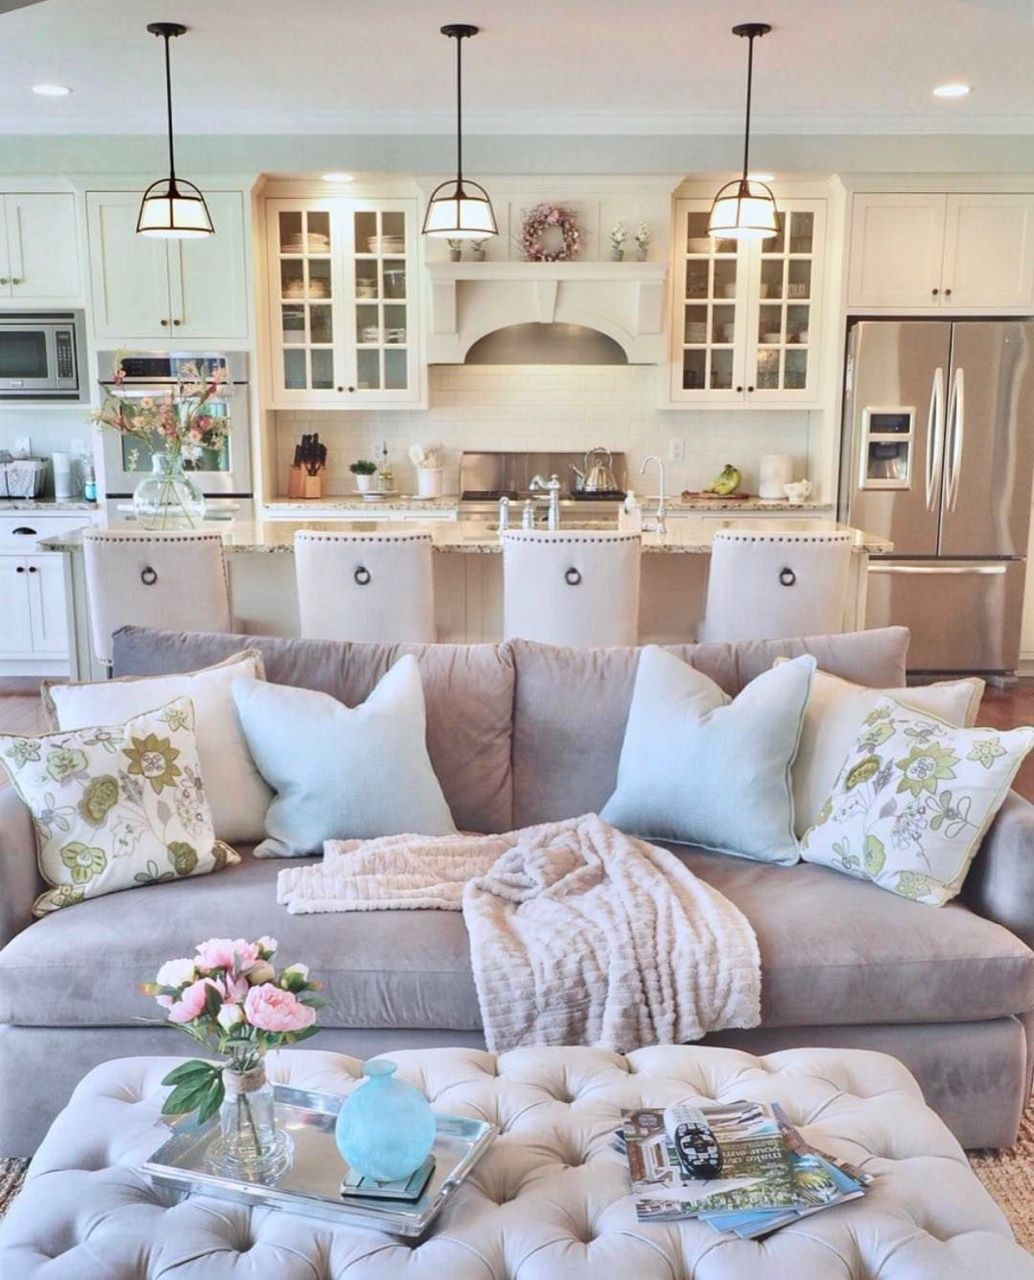 1 Room Kitchen Decoration: A Southern Mother